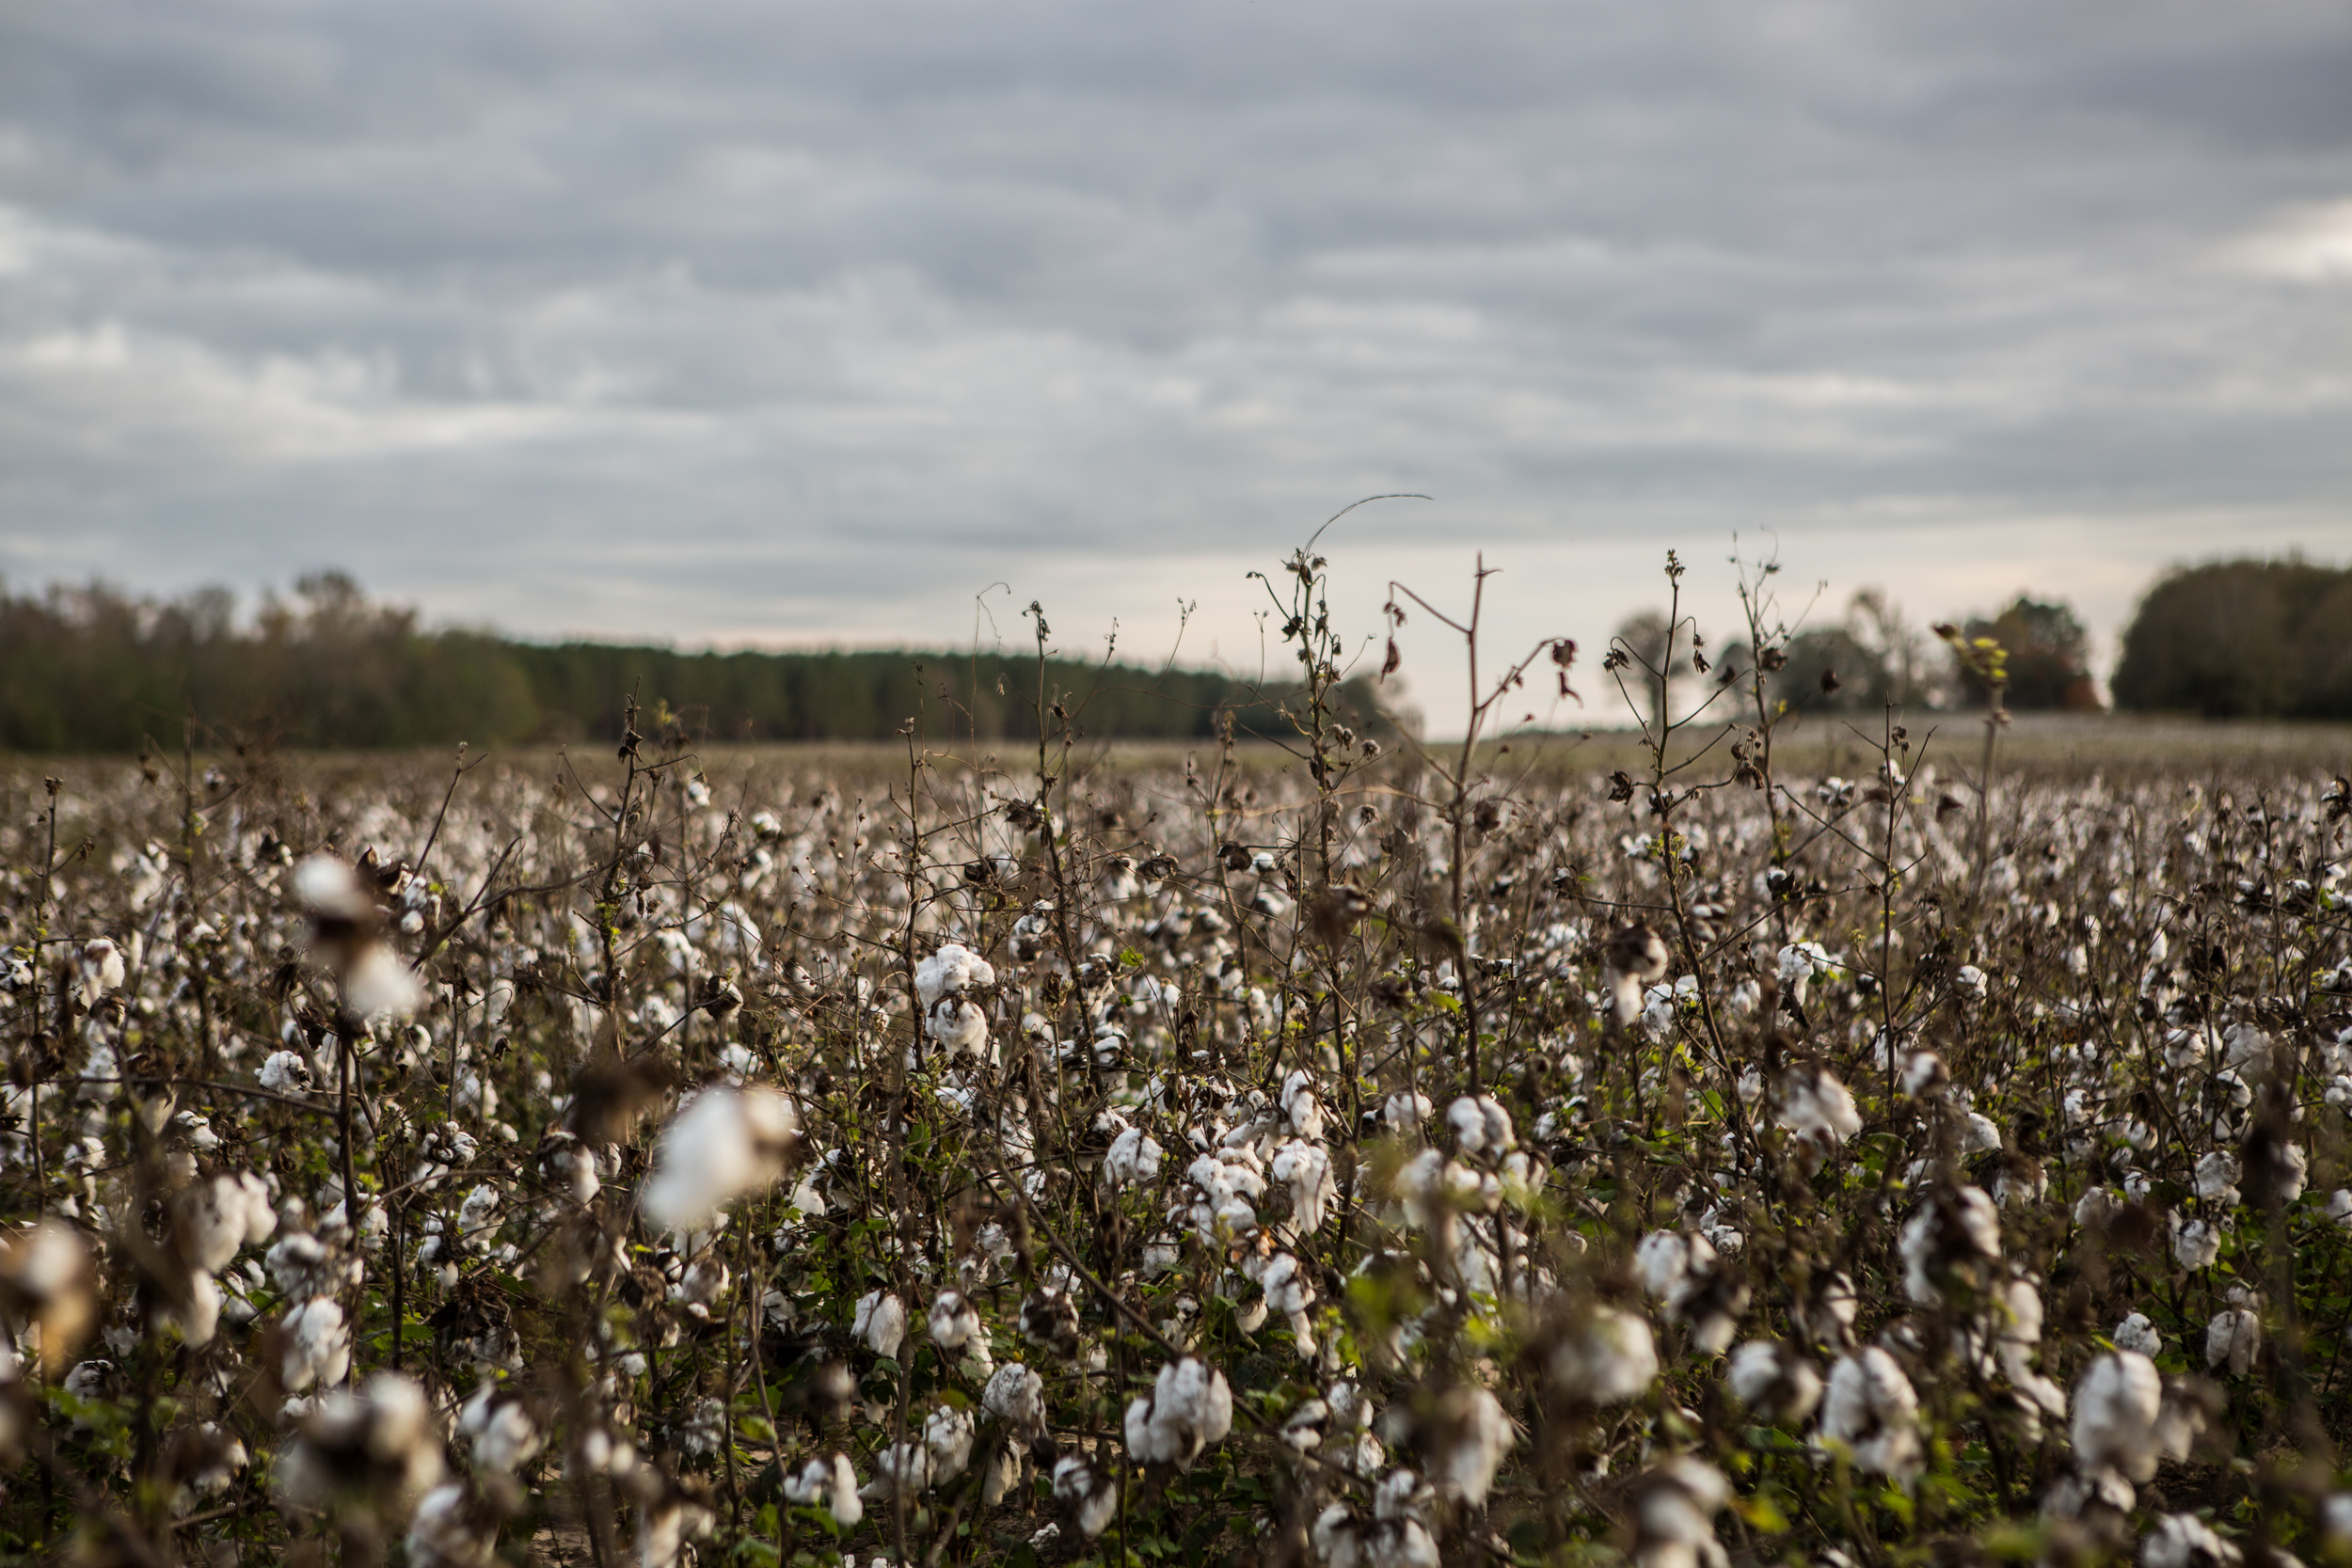 One of many cotton fields we passed in Alabama. The stalks look like miniature trees with clouds all about the branches.